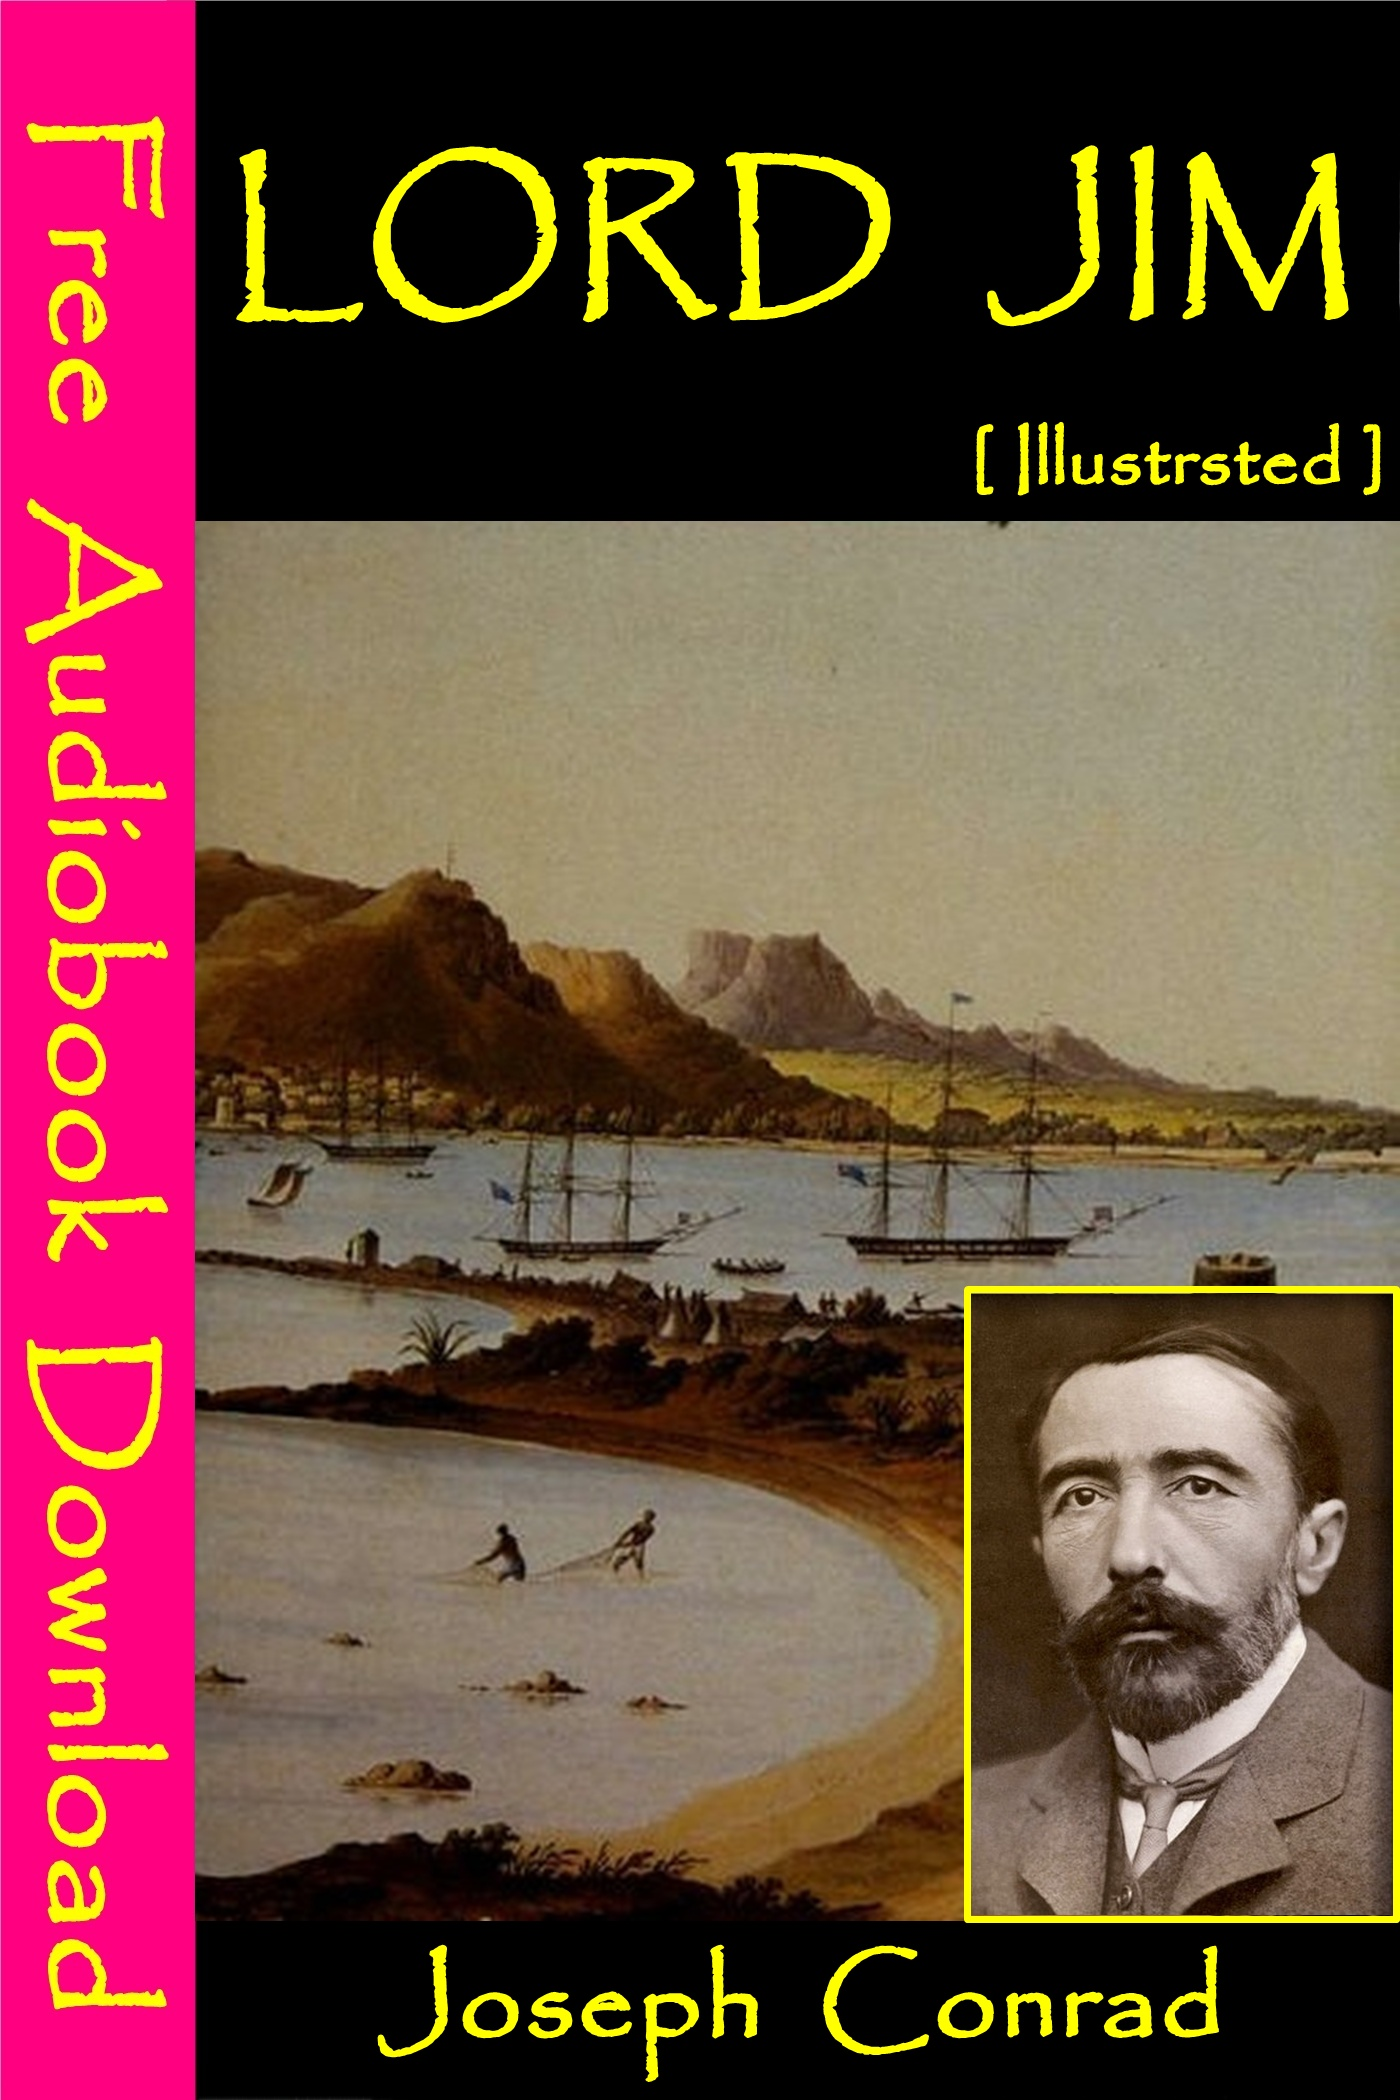 postcolonial studies in lord jim by joseph conrad Edward said was not only an innovator of postcolonial theory, but a keen  as  said demonstrates, lord jim and other stories by conrad are in.